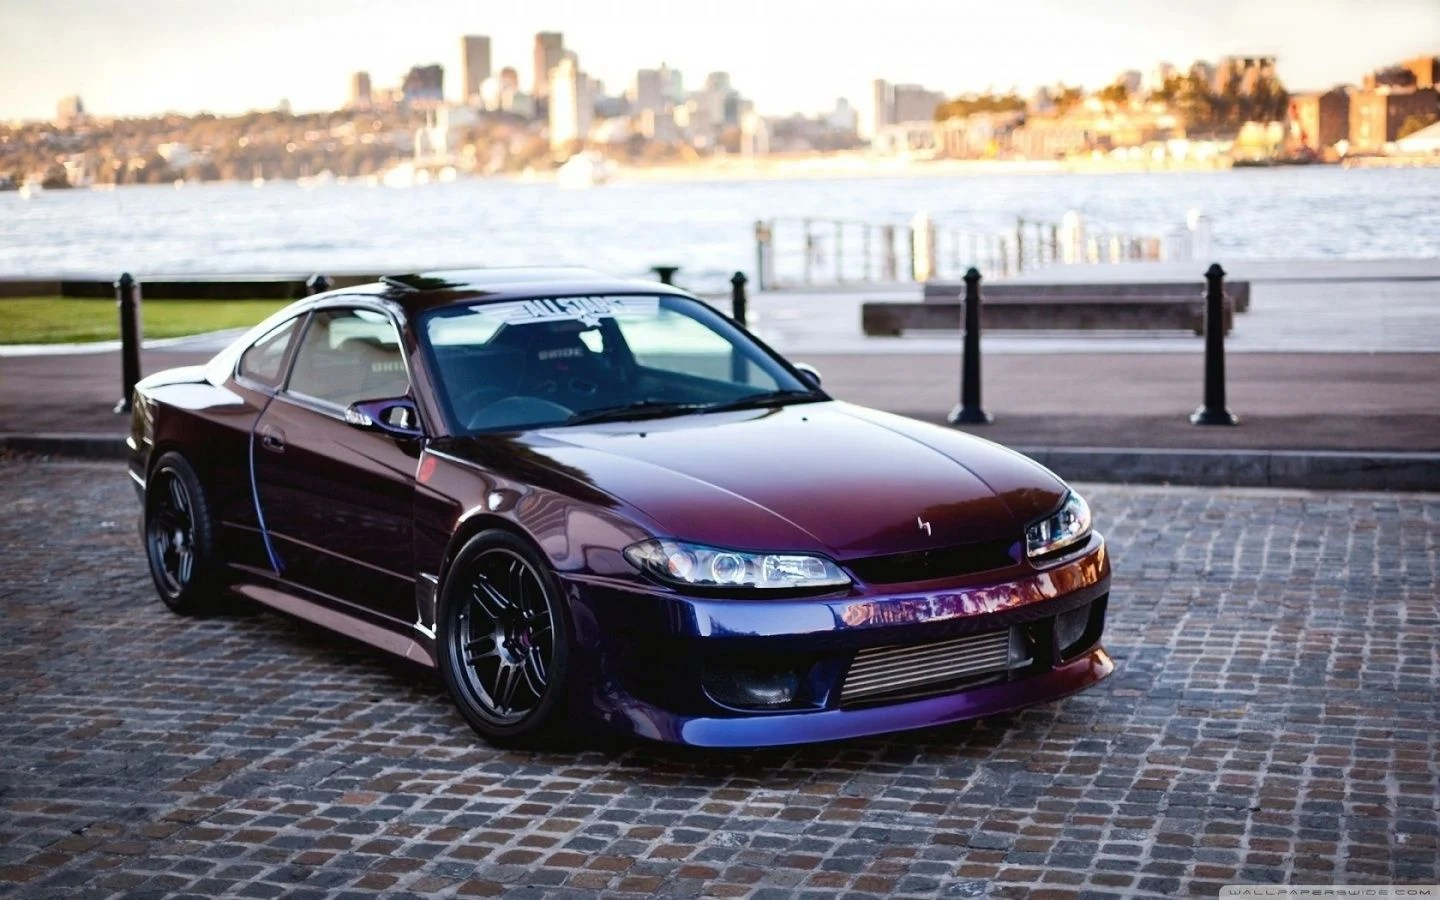 Tons of awesome aesthetic jdm 1920x1080 wallpapers to download for free. 4k Jdm Wallpapers Top Free 4k Jdm Backgrounds Wallpaperaccess